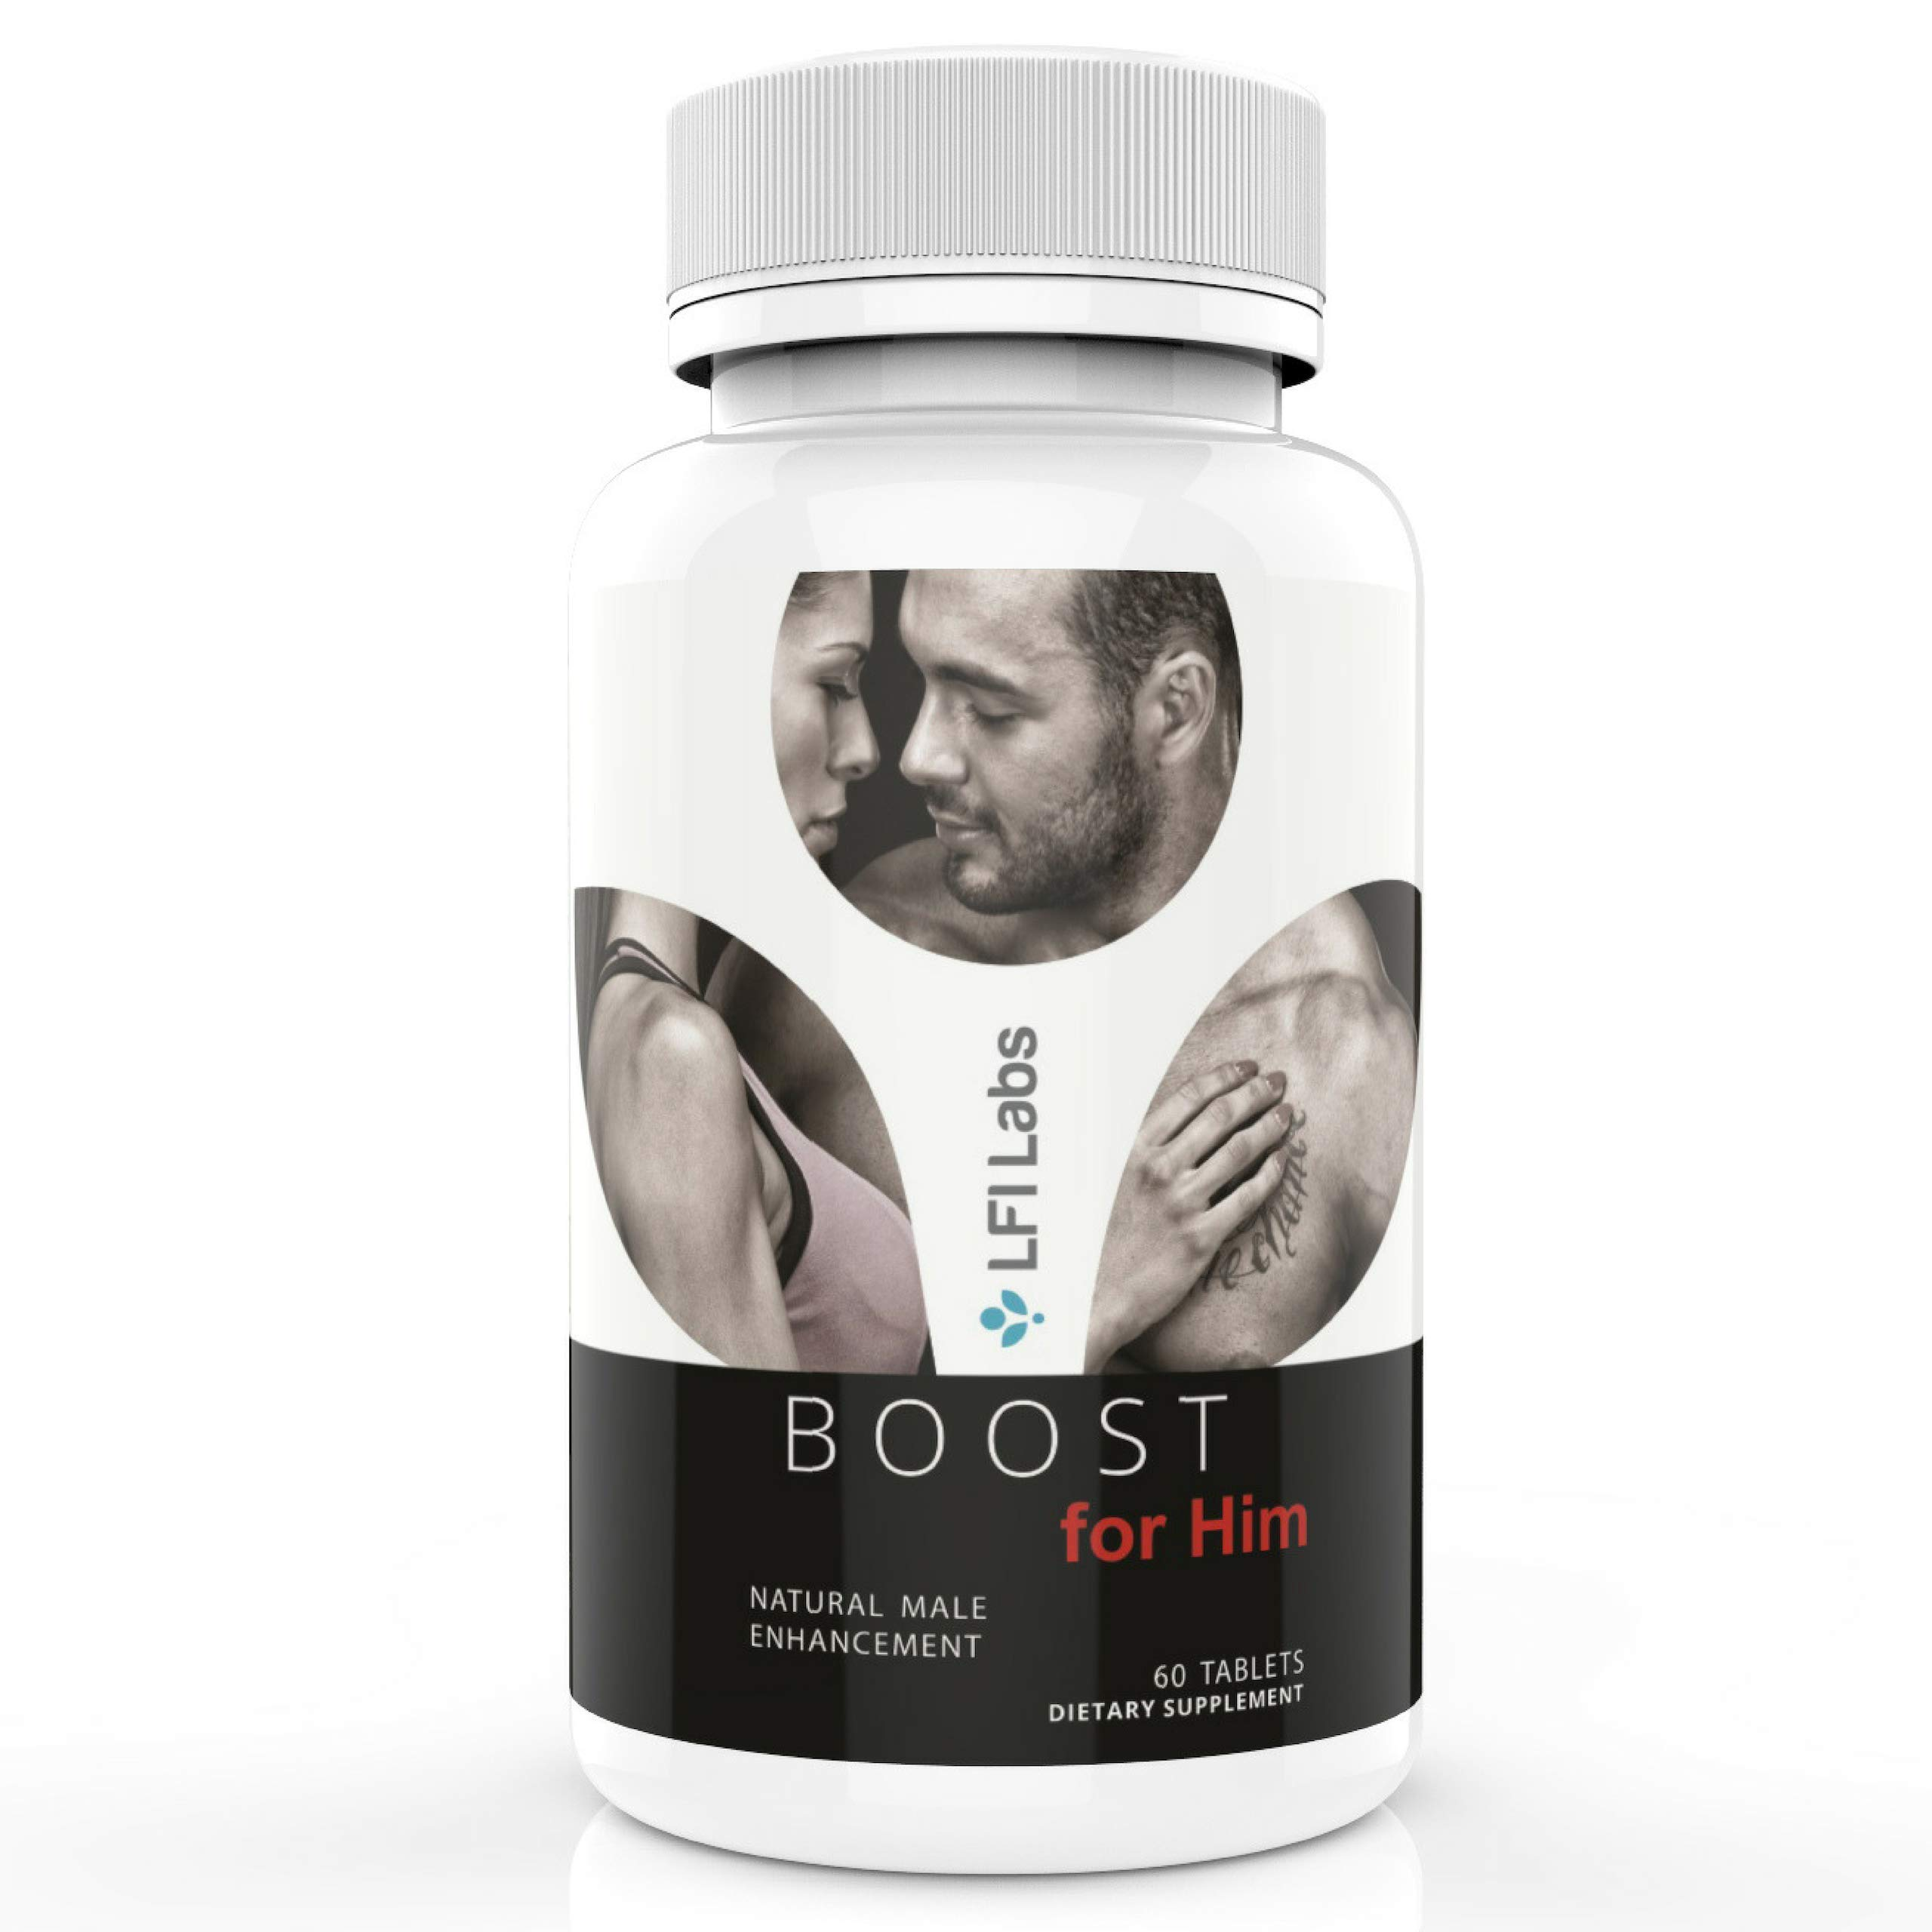 Boost For Him — Premium Enhancement Formula for Men with Tongkat Ali and Maca for a Maximum Strength Boost, Energy, Endurance | 60 Tablets